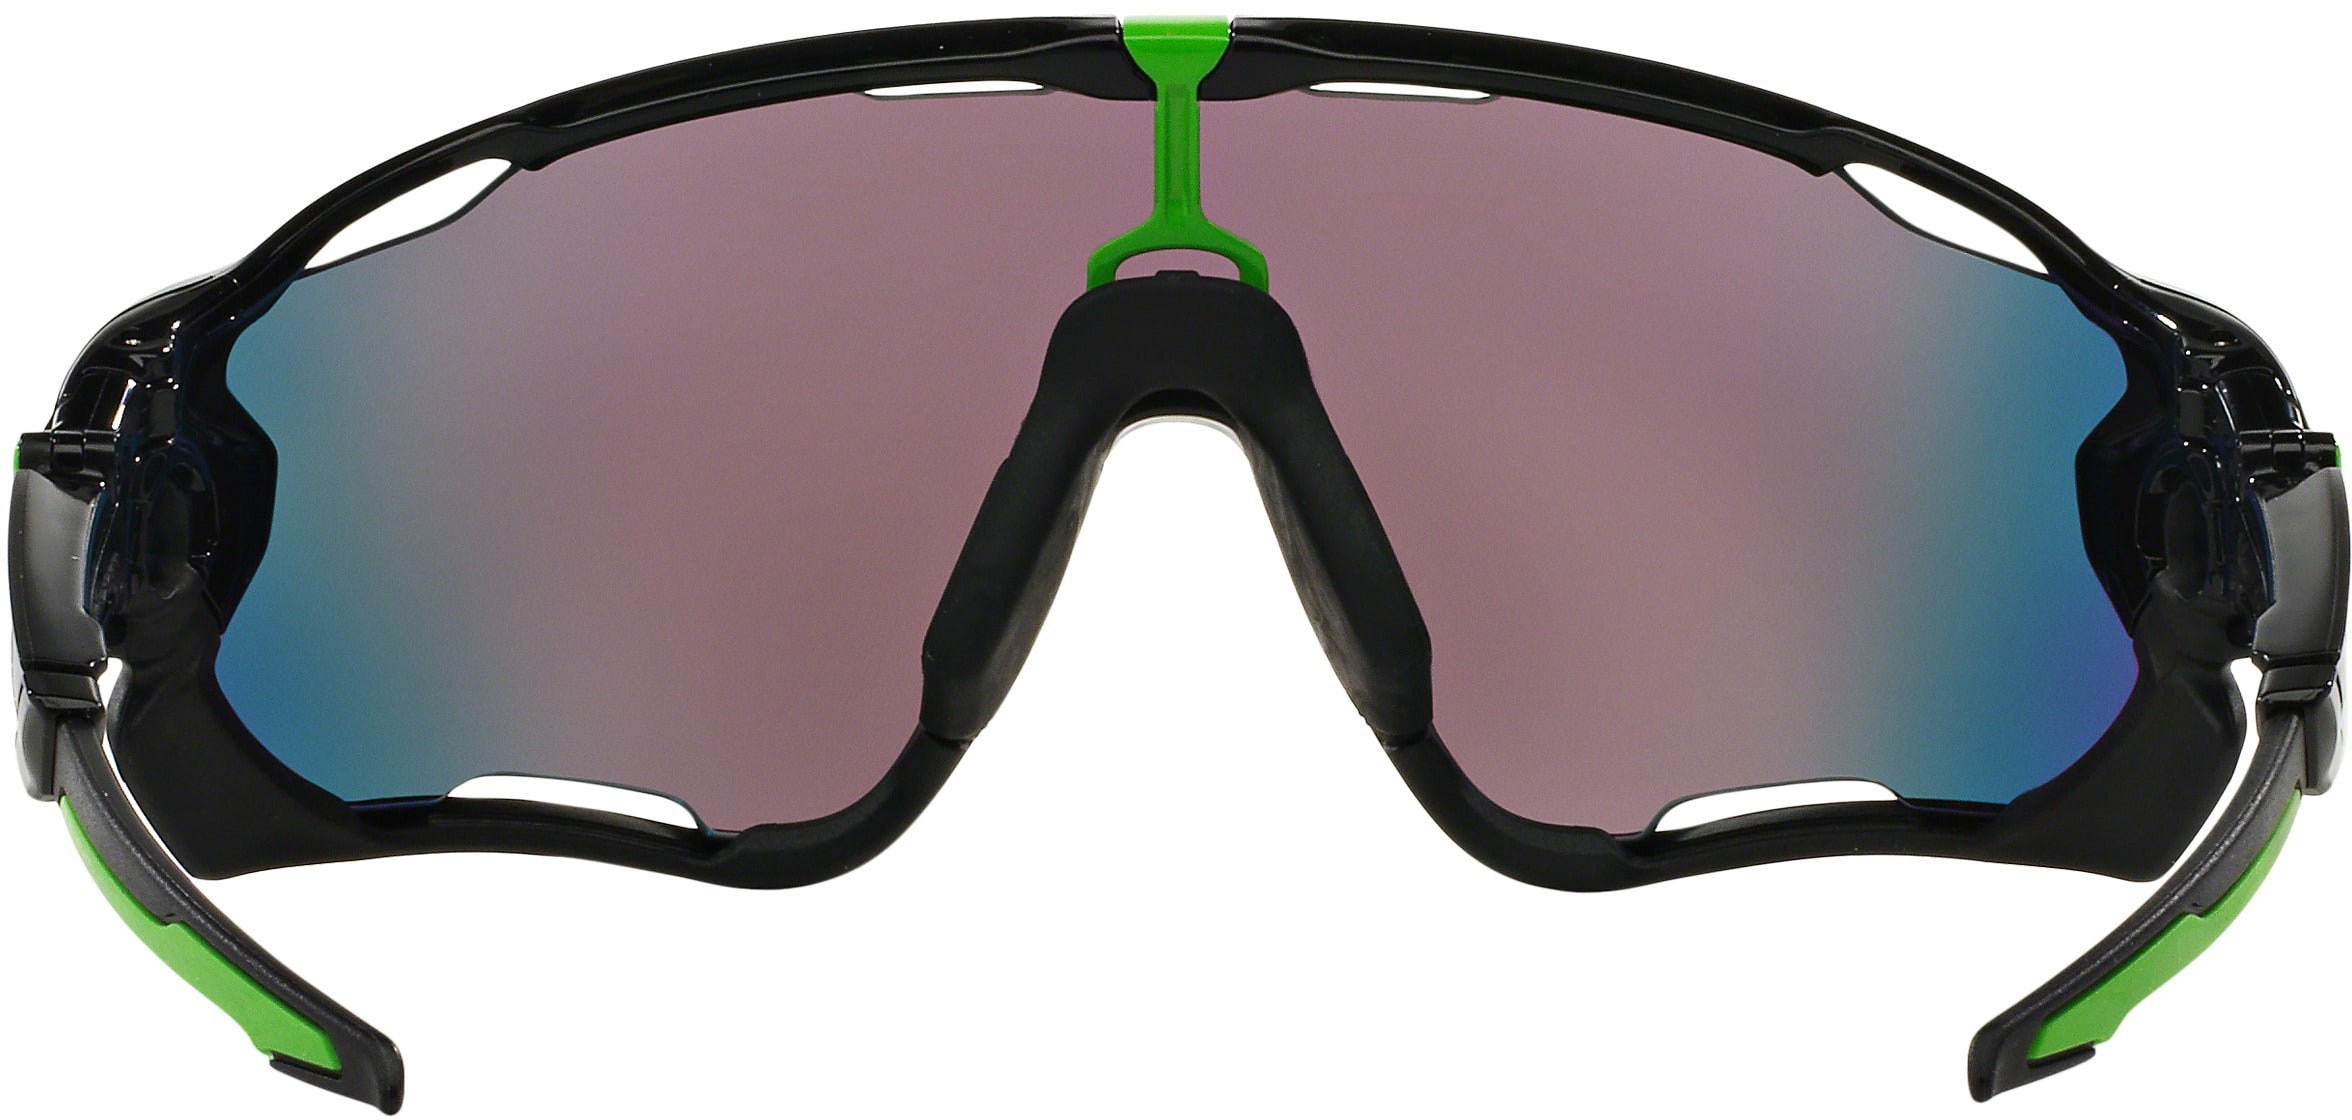 895f1a9326 Oakley Jawbreaker Cavendish Edition Sunglasses - thumbnail 4